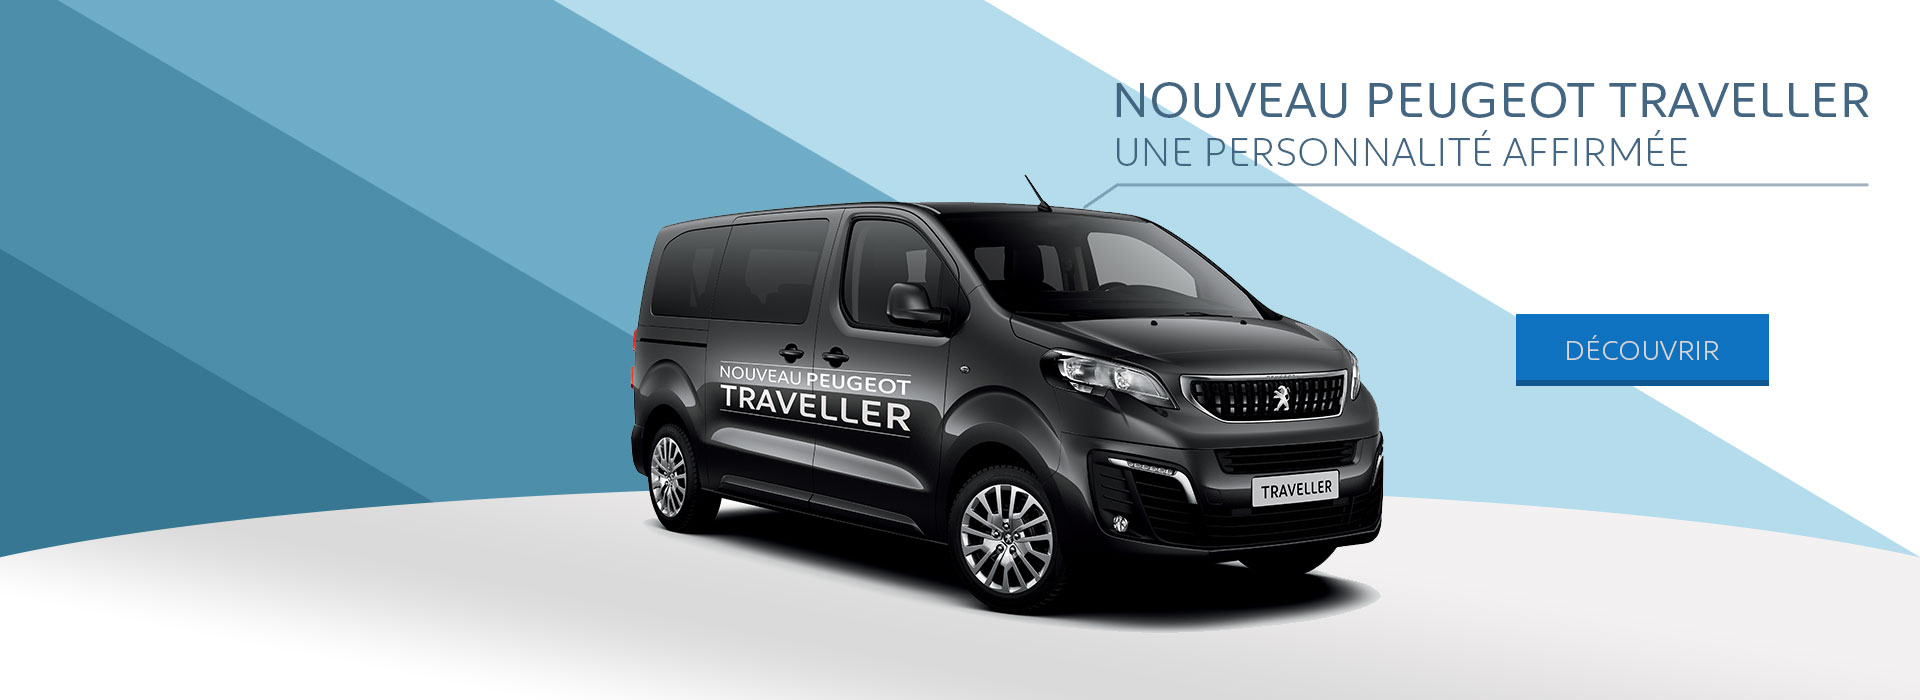 peugeot charleville vente voiture neuve vehicule occasion. Black Bedroom Furniture Sets. Home Design Ideas